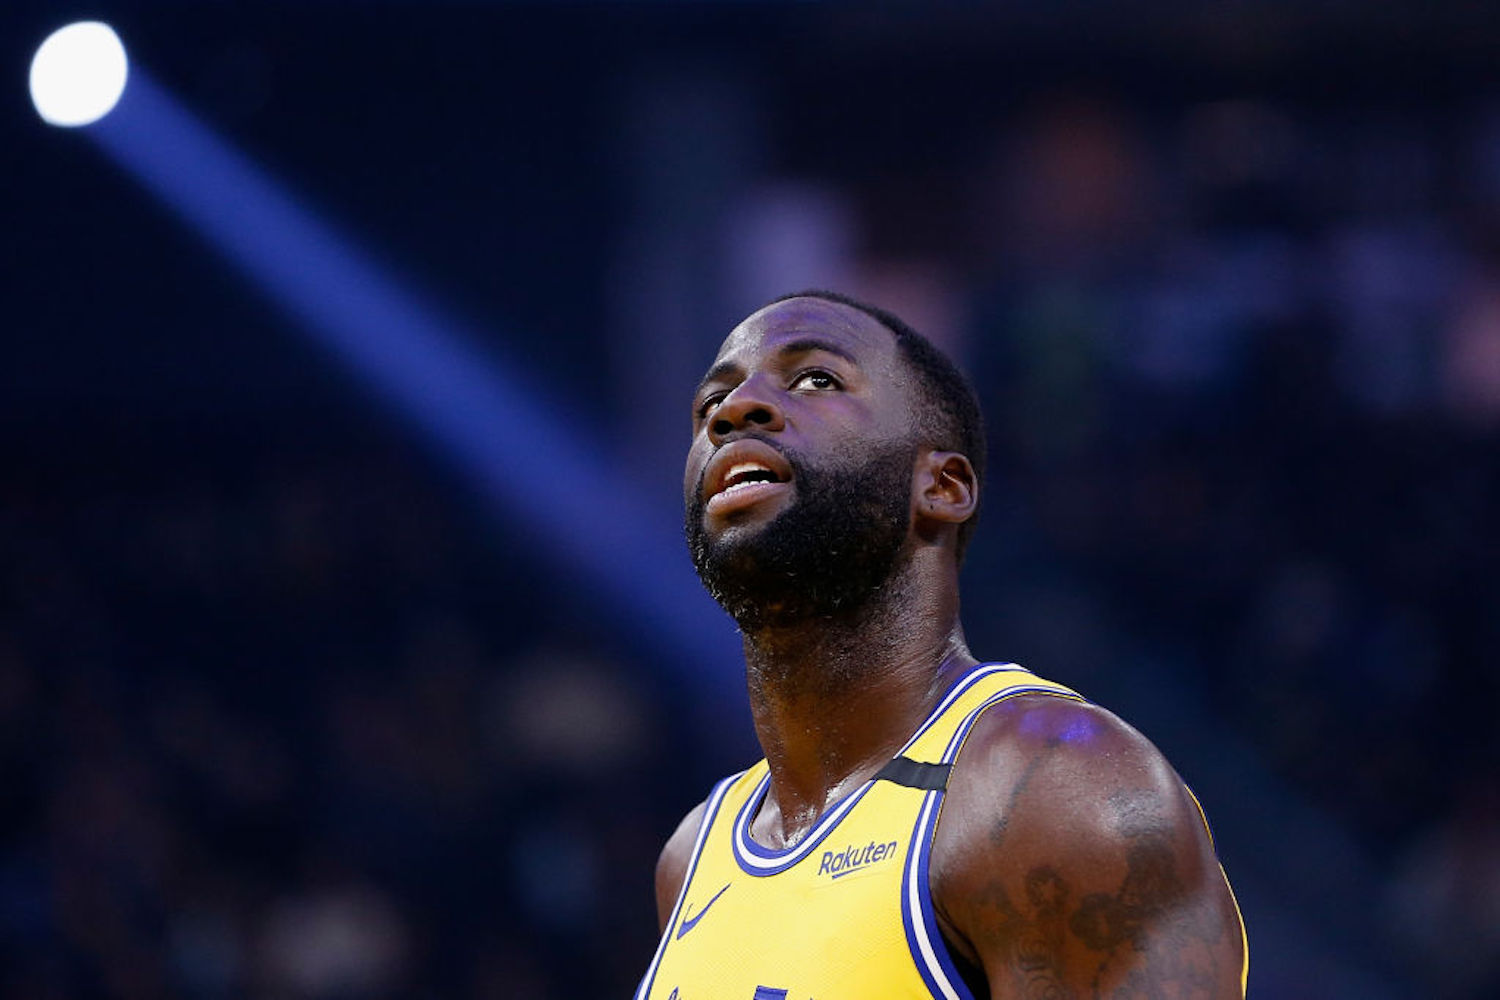 Draymond Green is always one to speak his mind, and he had a passionate message for the protesters in Washington D.C. on Wednesday.